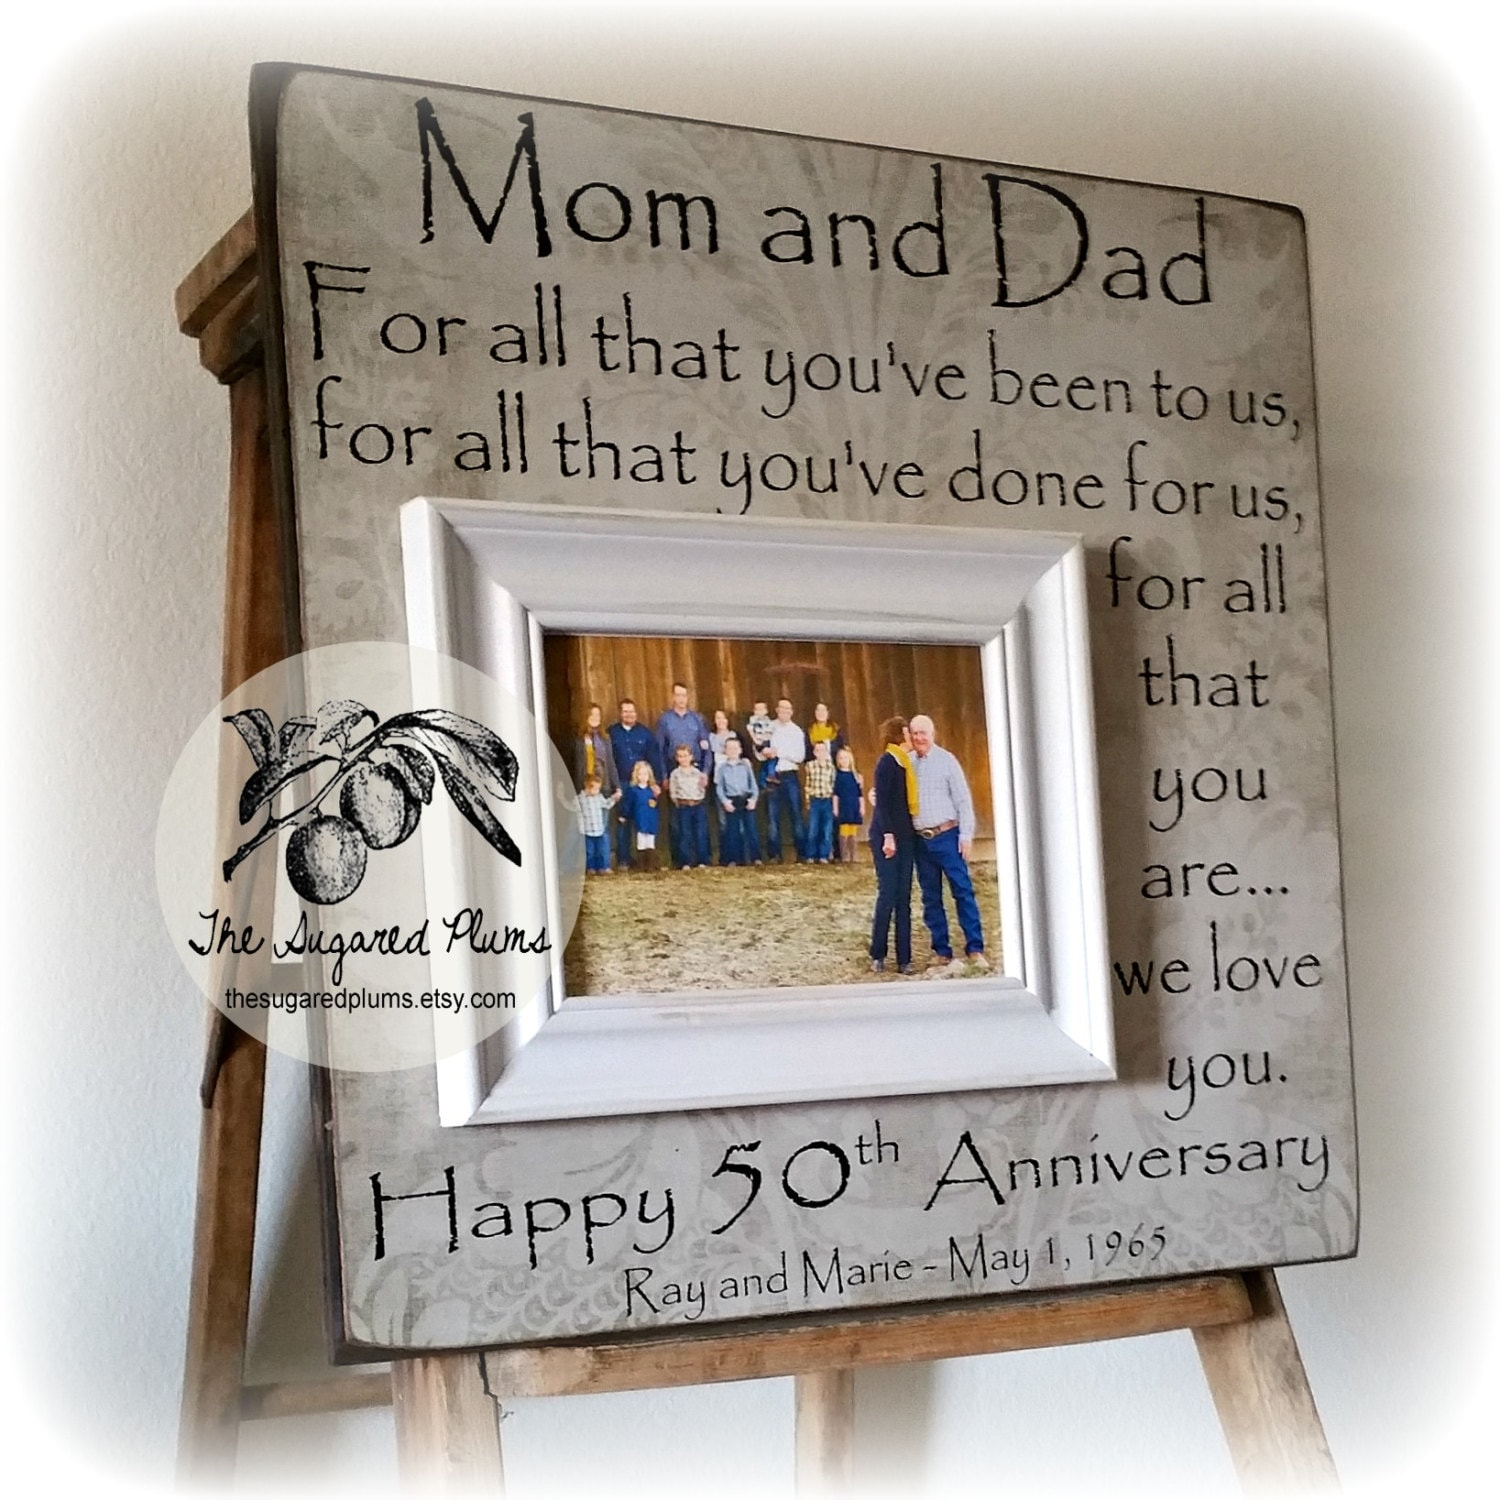 17 Year Wedding Anniversary Traditional Gift: 50th Anniversary Gifts Parents Anniversary Gift For All That